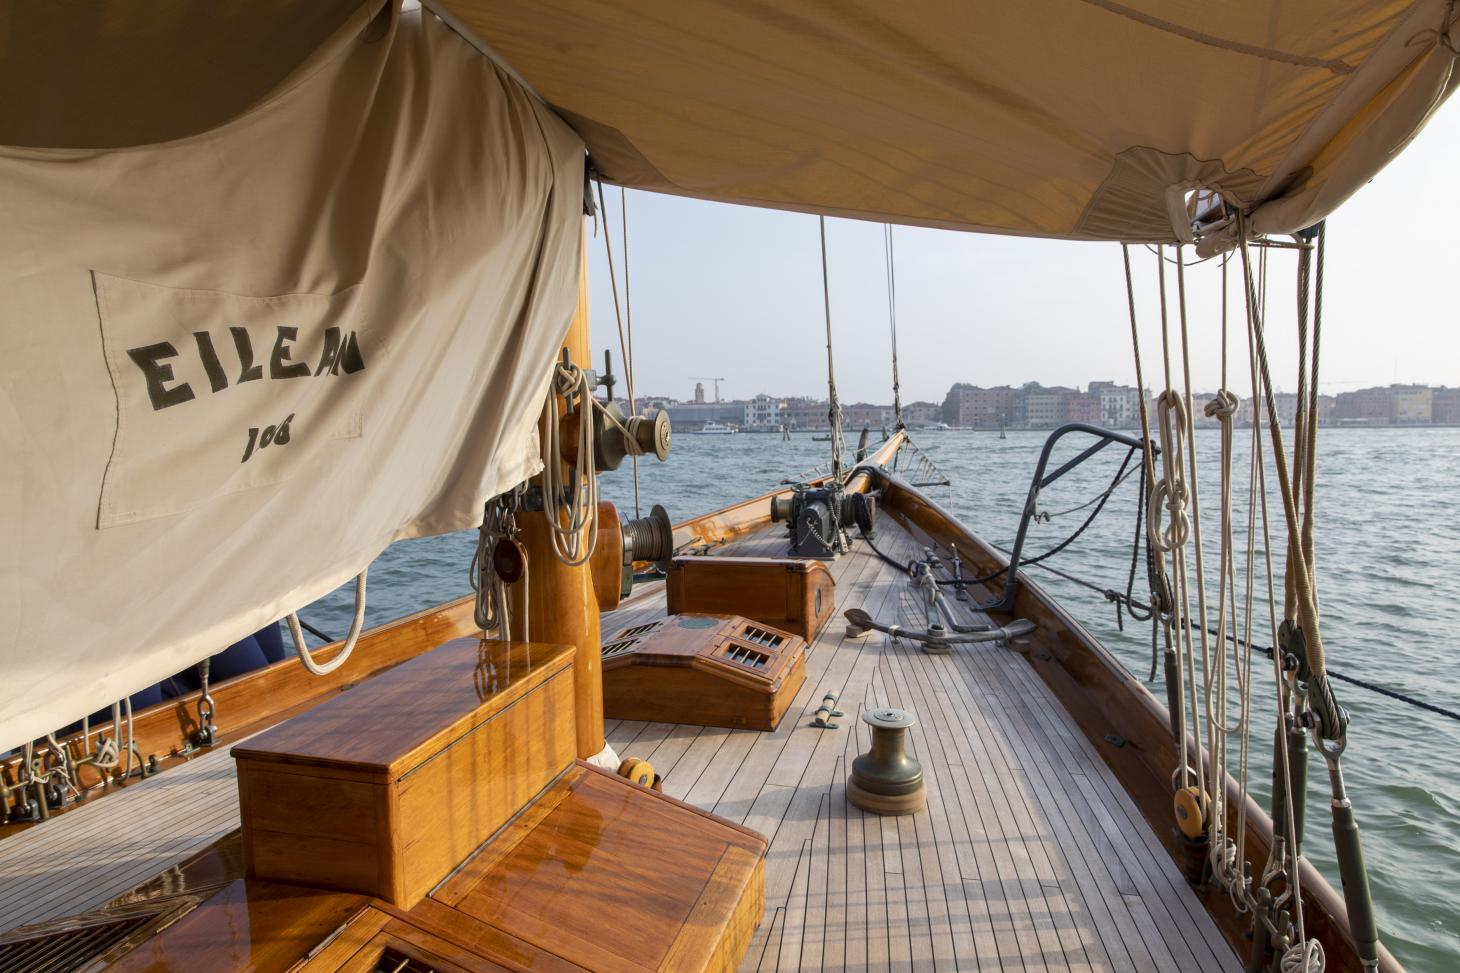 On the deck of 1936 sailing ketch Eilean yacht